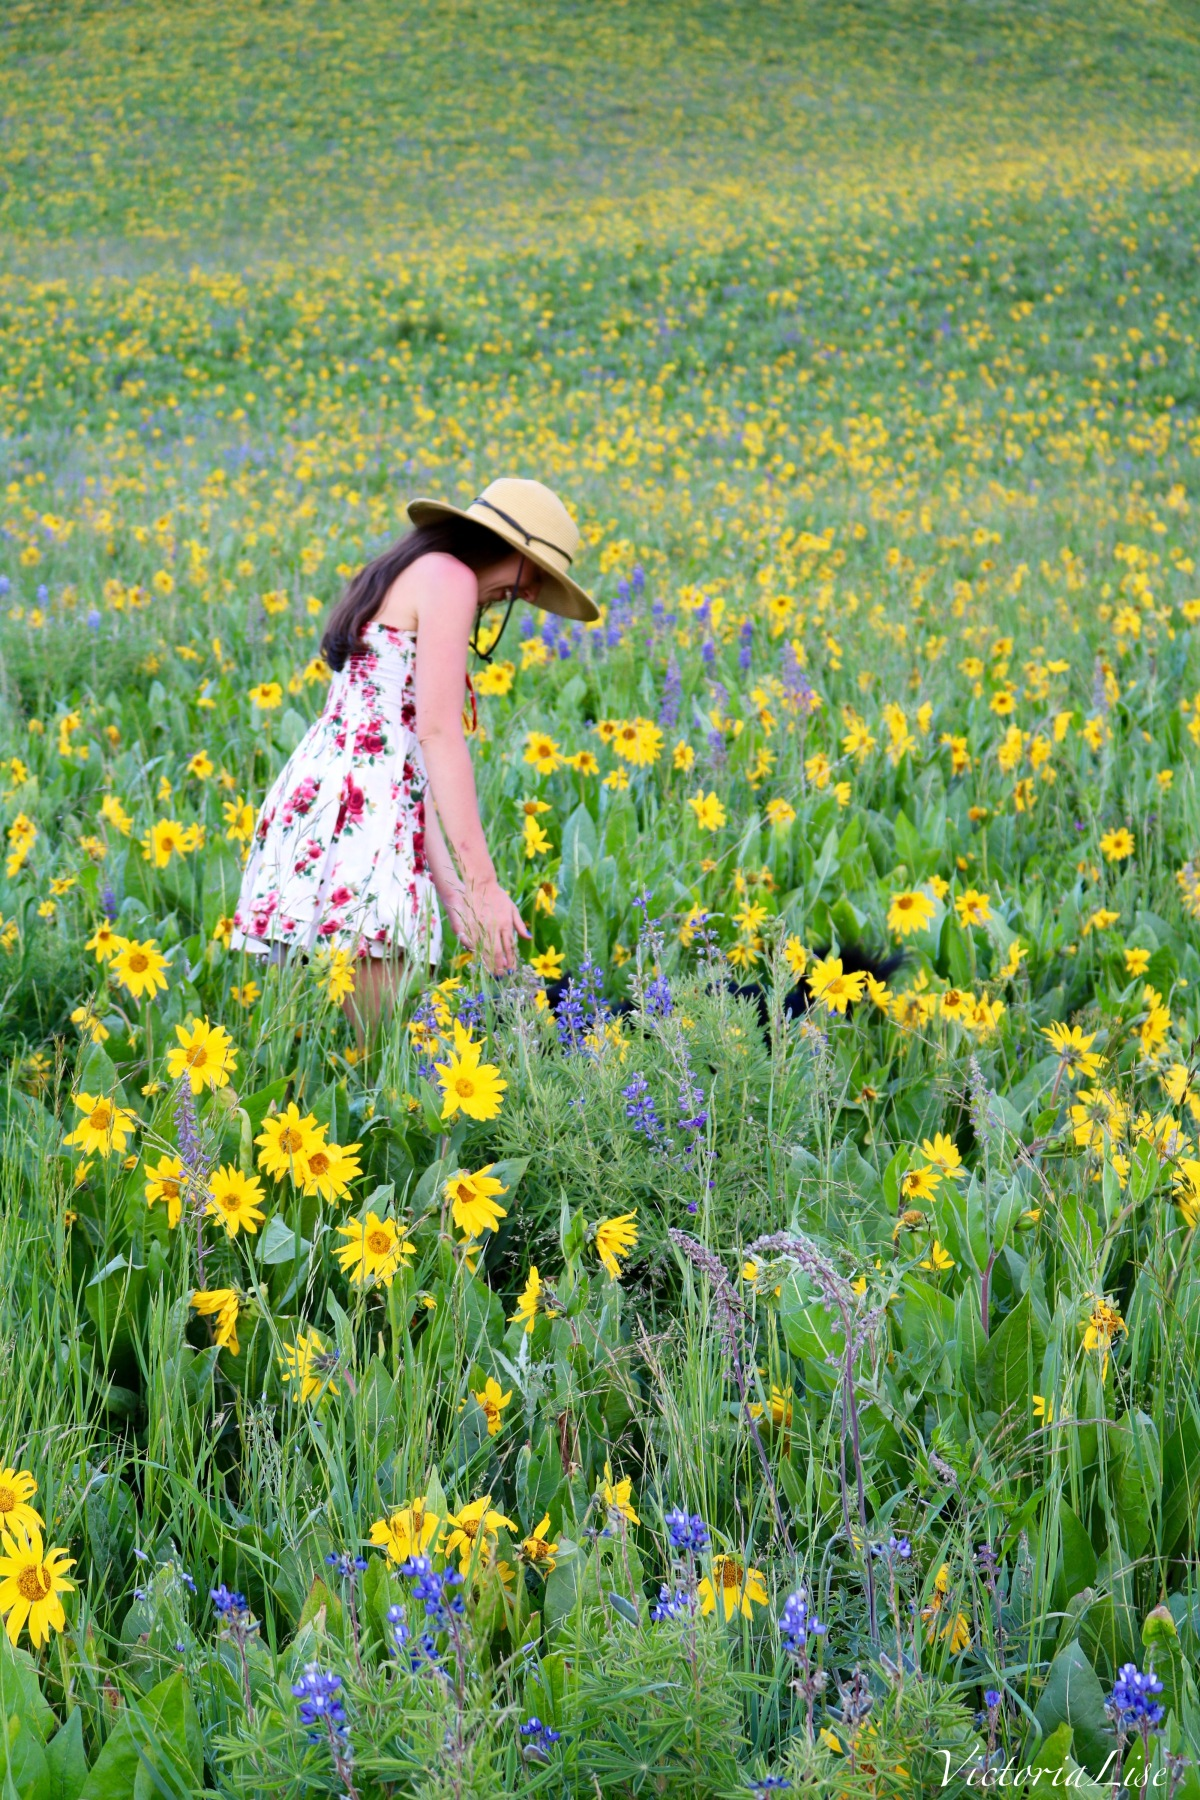 Happiness in a field of Wildflowers.